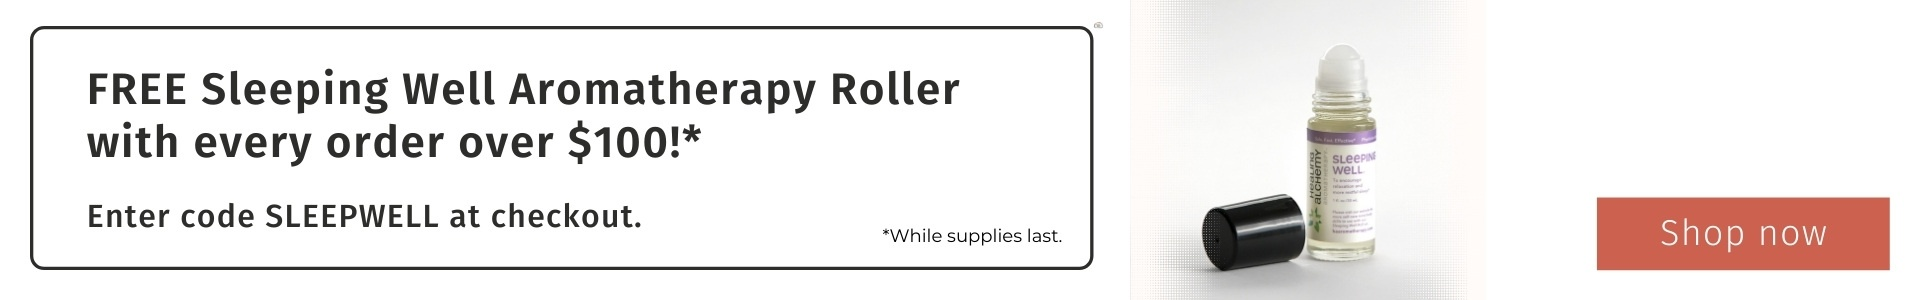 Free Sleeping Well Aromatherapy Roller with every order over $100 while supplies last. Enter SLEEPWELL at checkout.